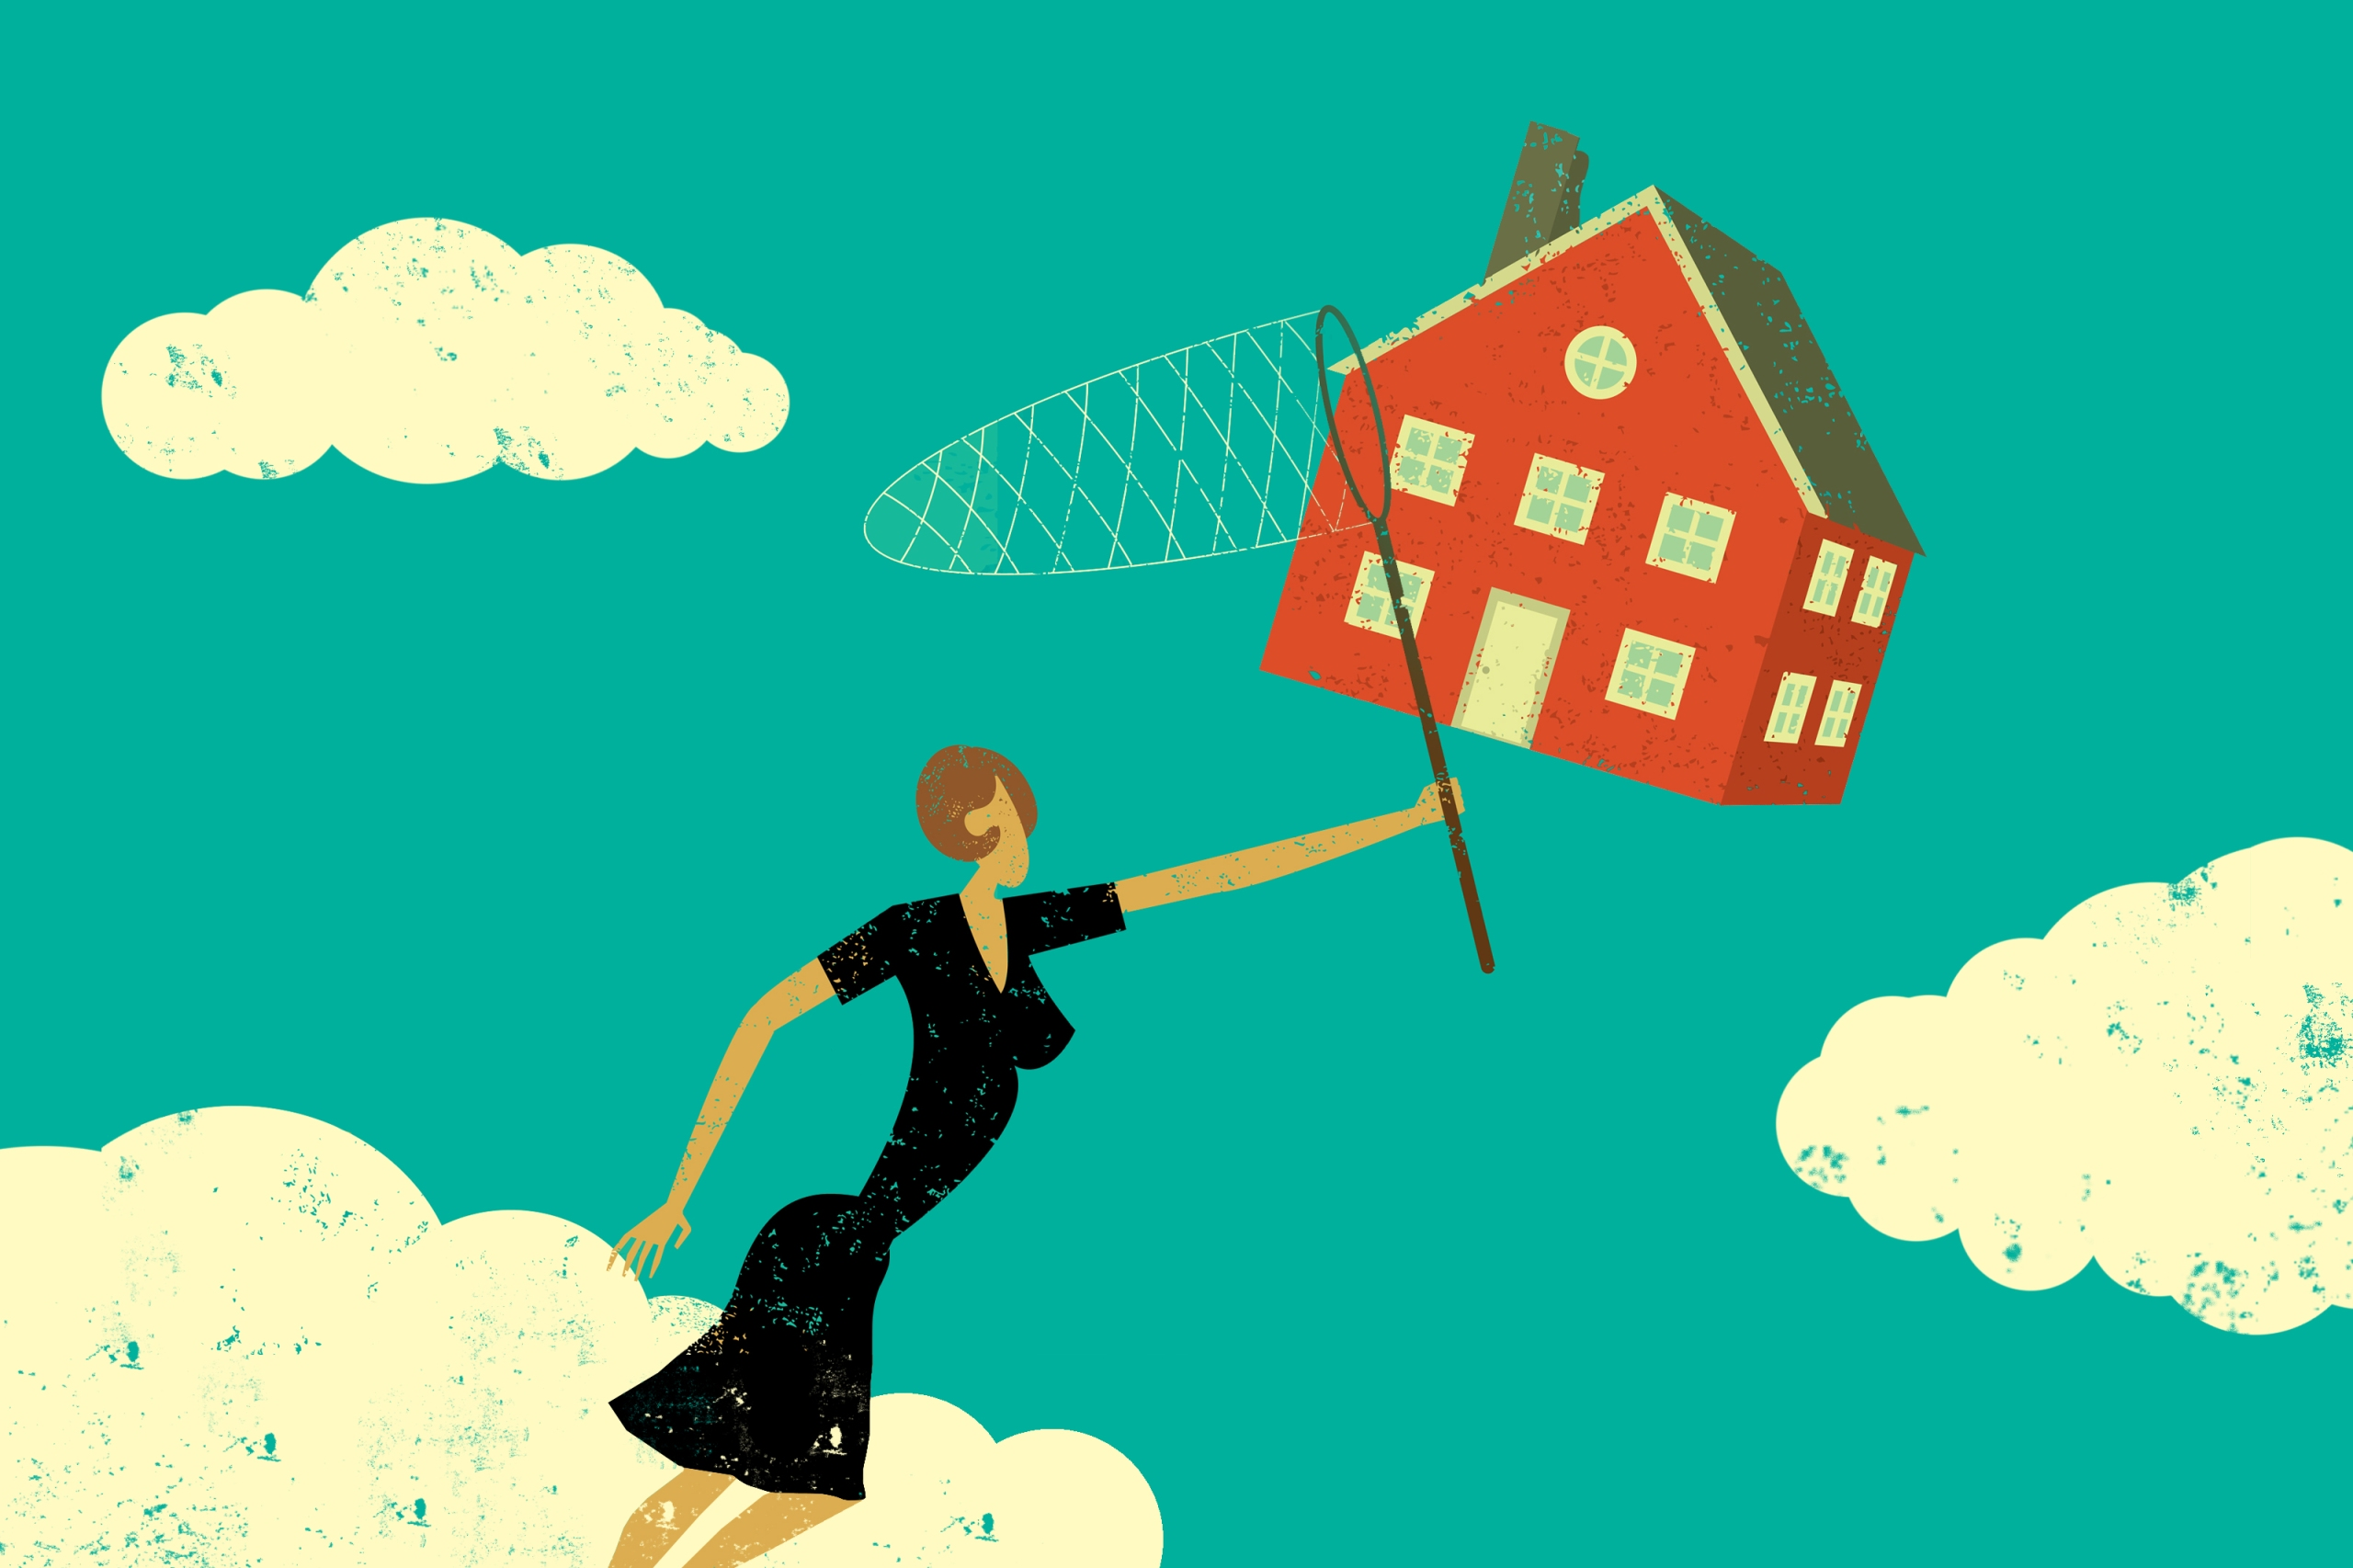 Illustration of woman chasing house with butterfly catcher